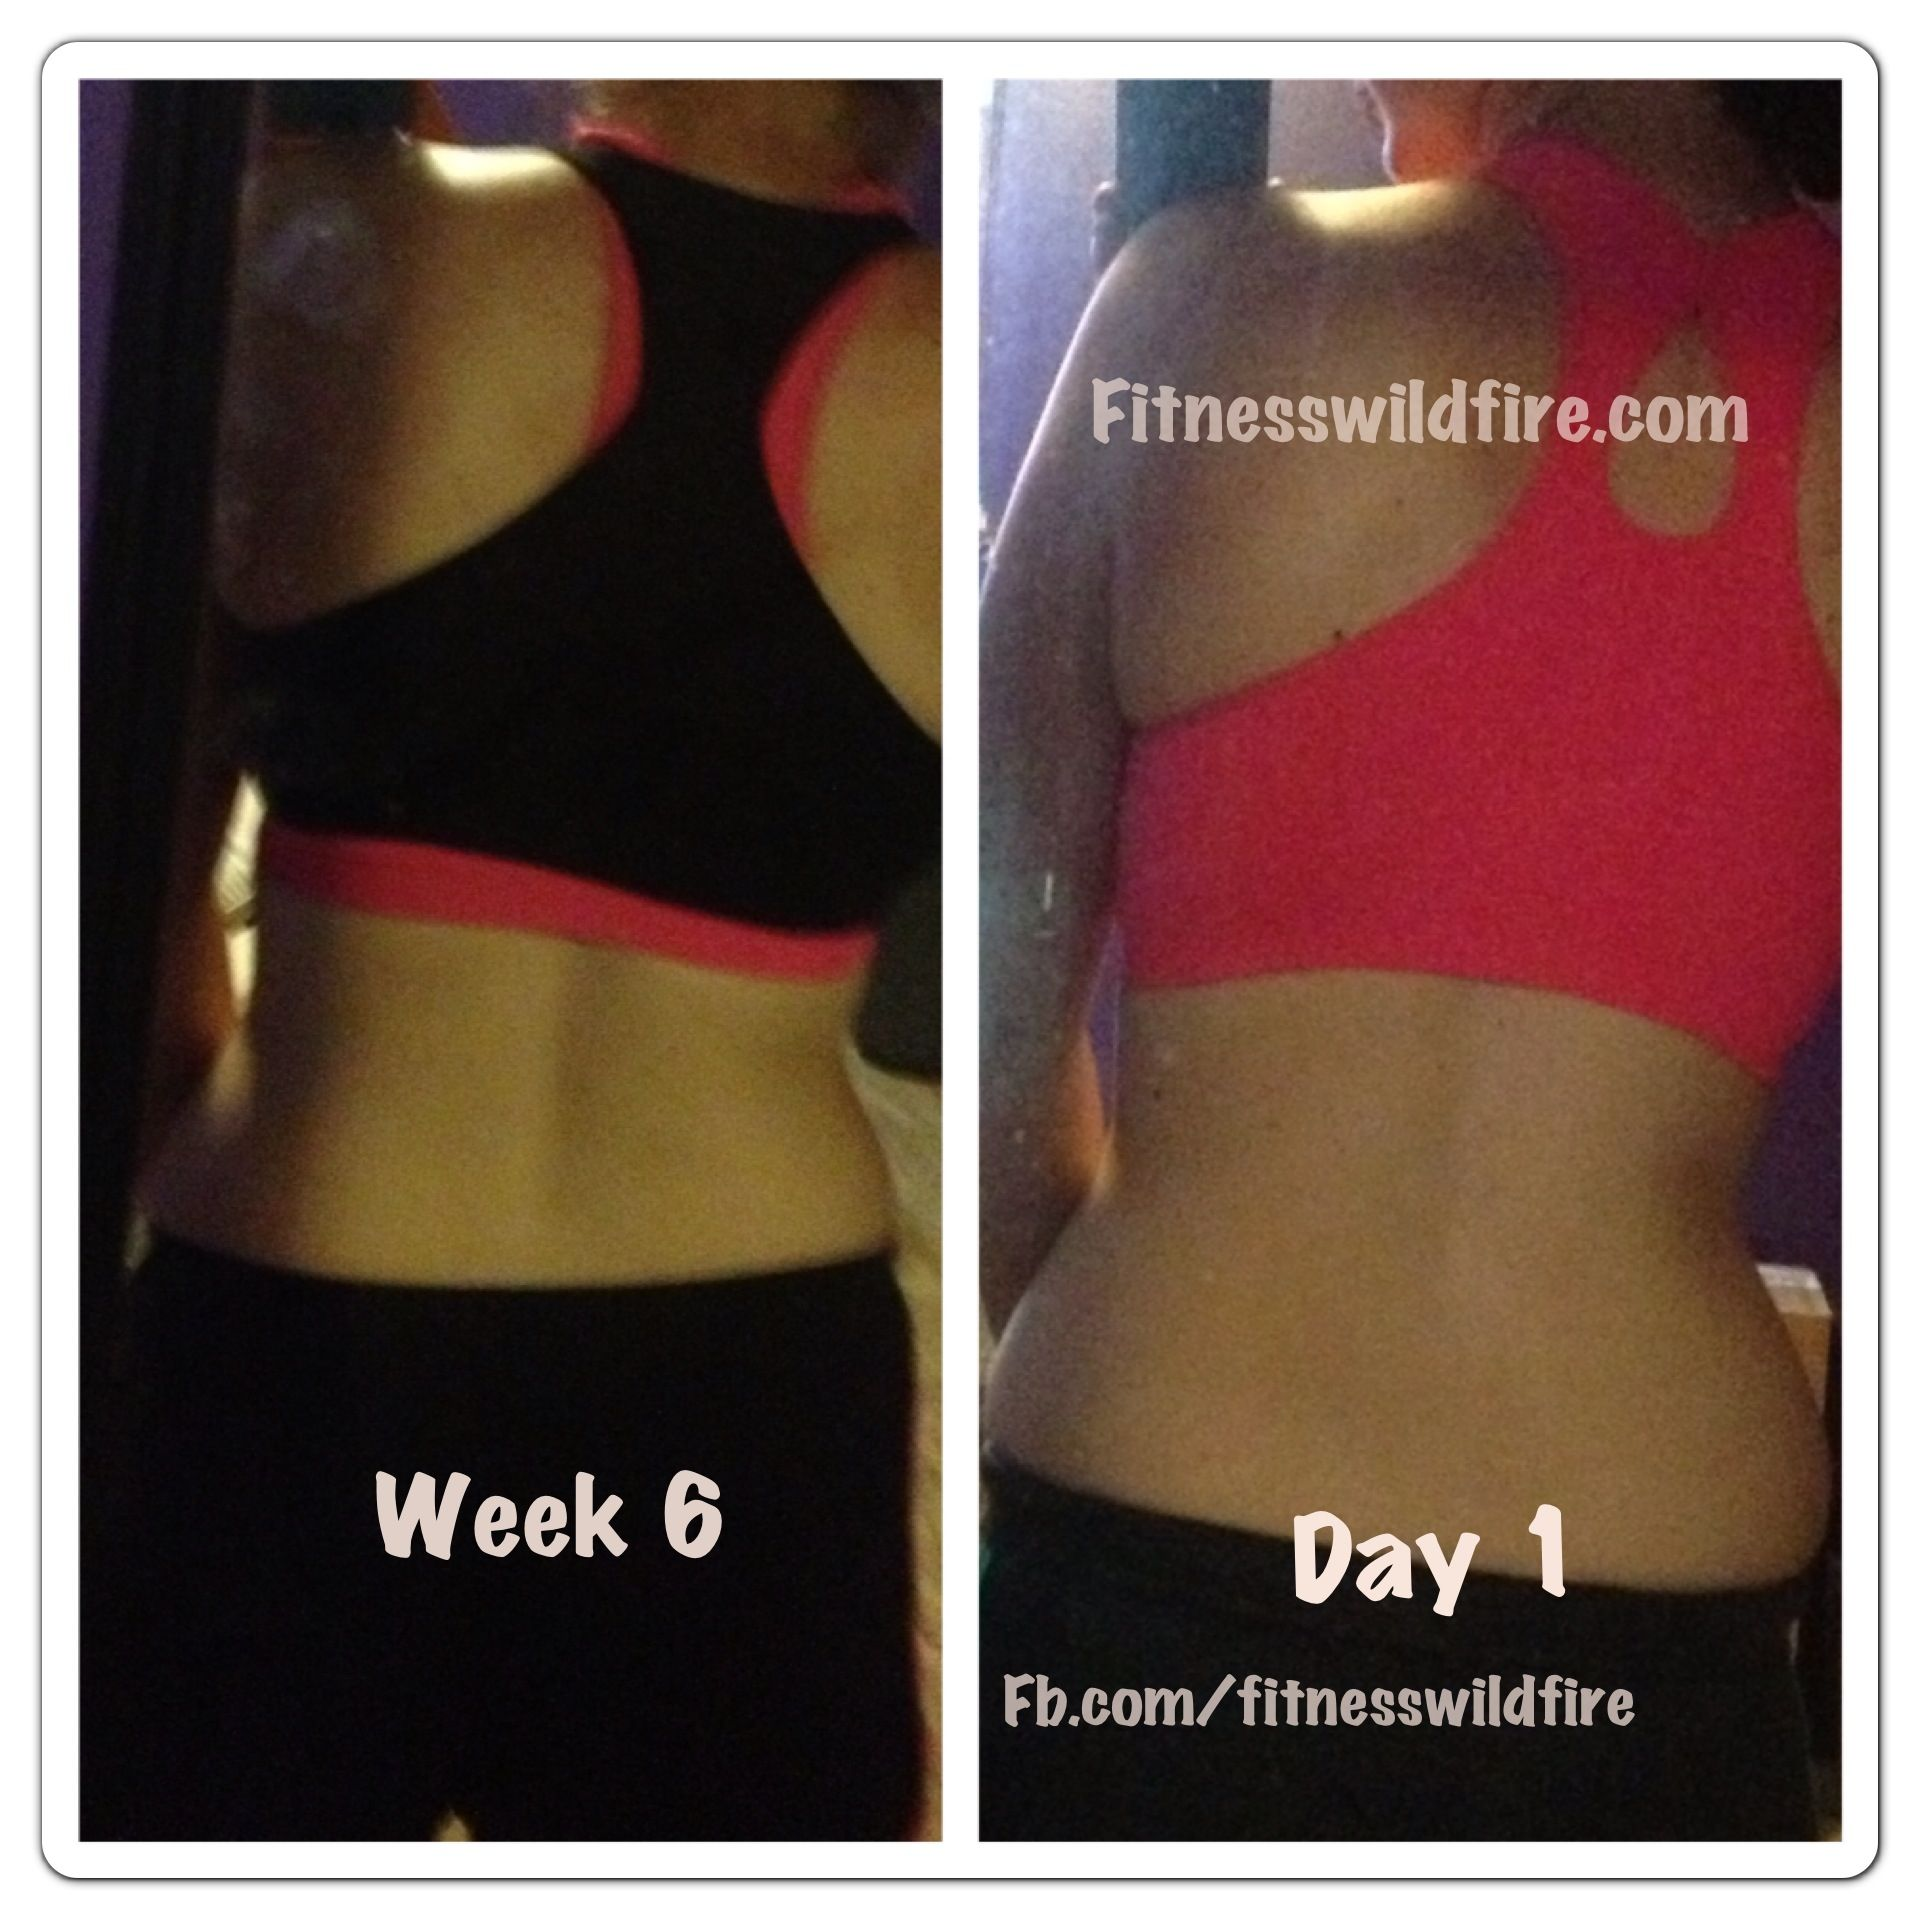 End of week 6 results for Focus T25